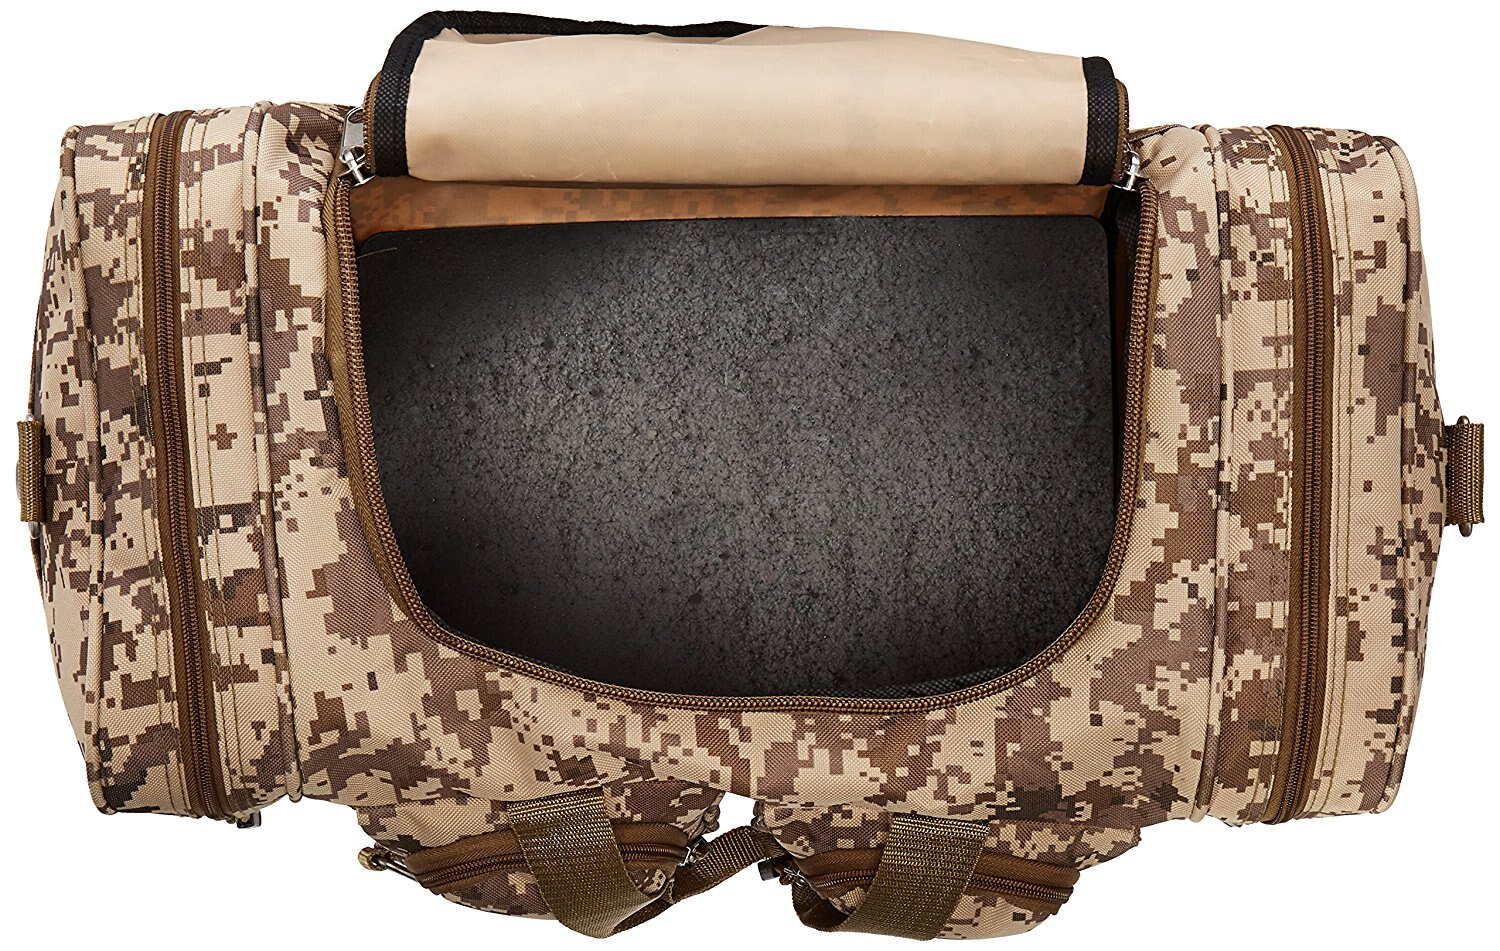 East West 31 Duffle Bag Tan Acu Dc3031 1